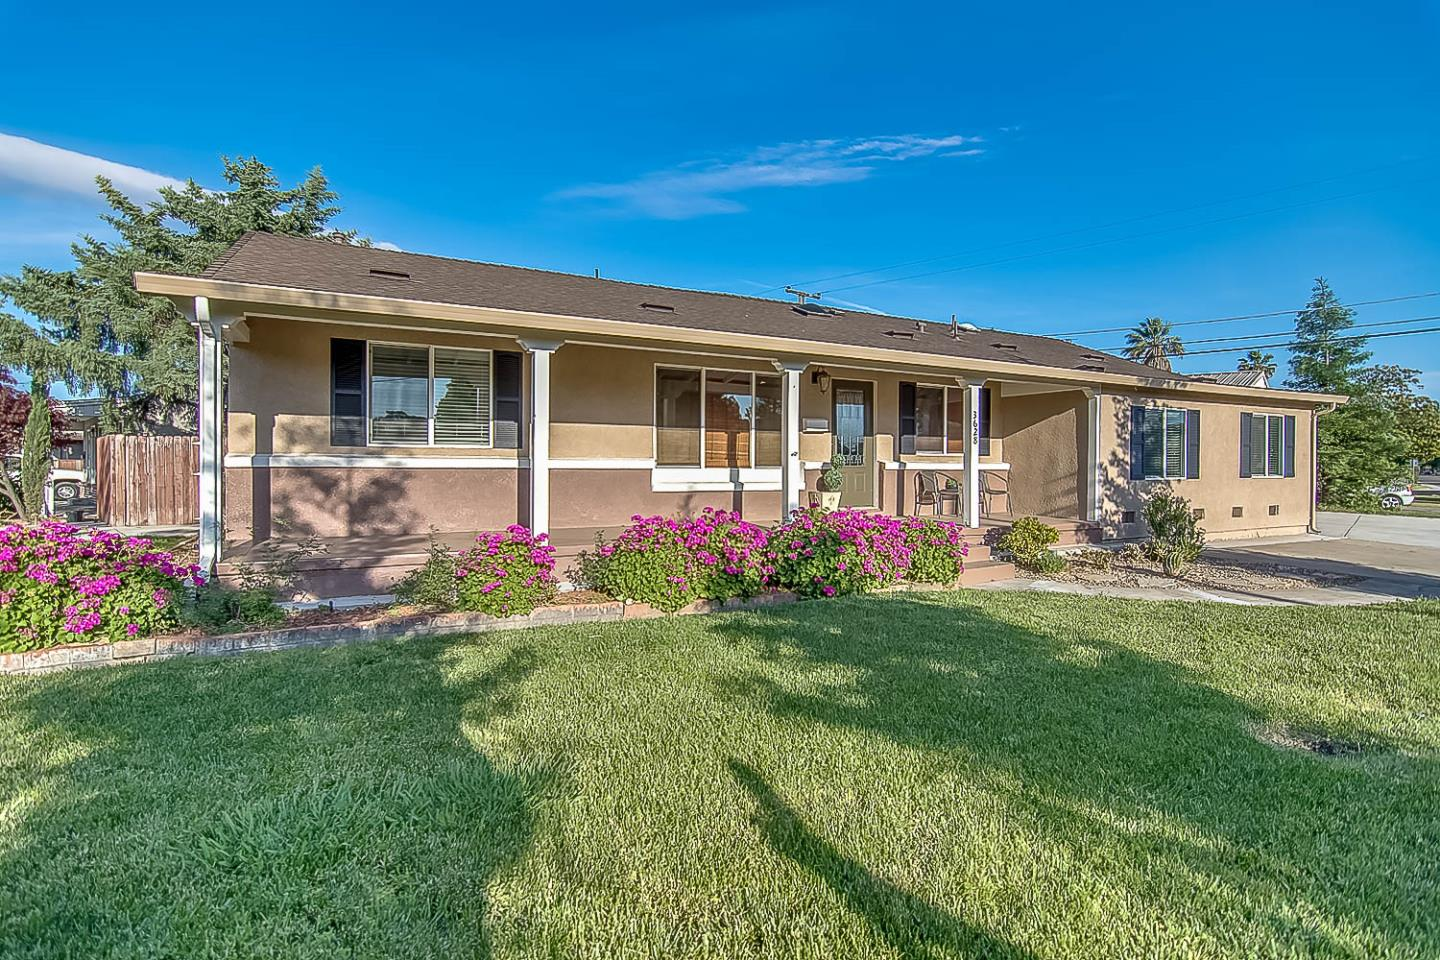 Additional photo for property listing at 3628 Kirk Street  Stockton, Californie 95204 États-Unis